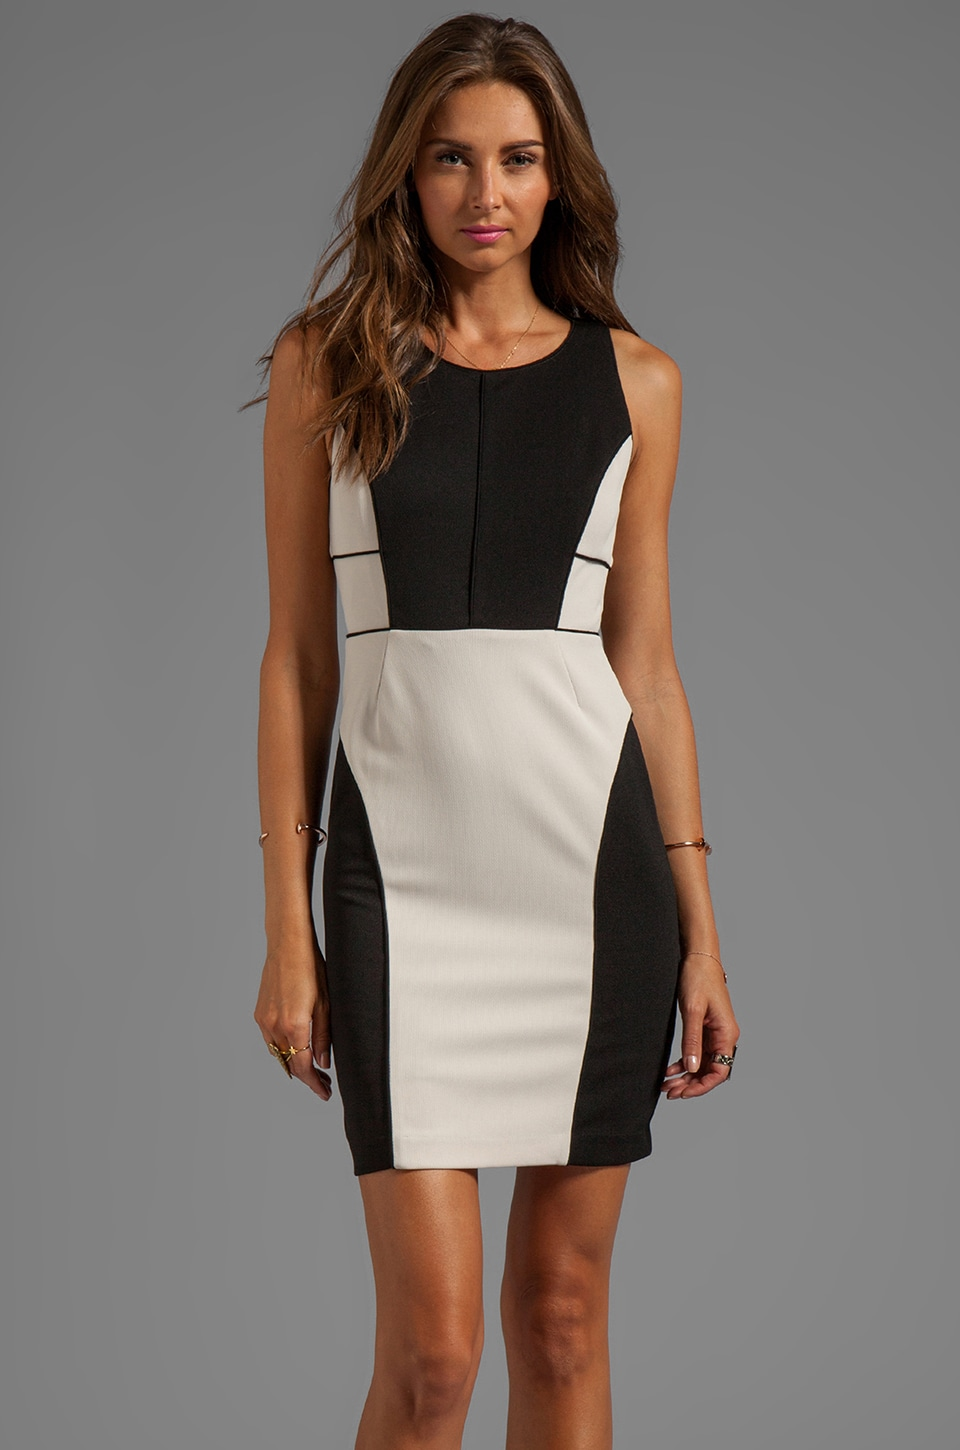 Greylin Angelina Color Blocked Dress in Ivory